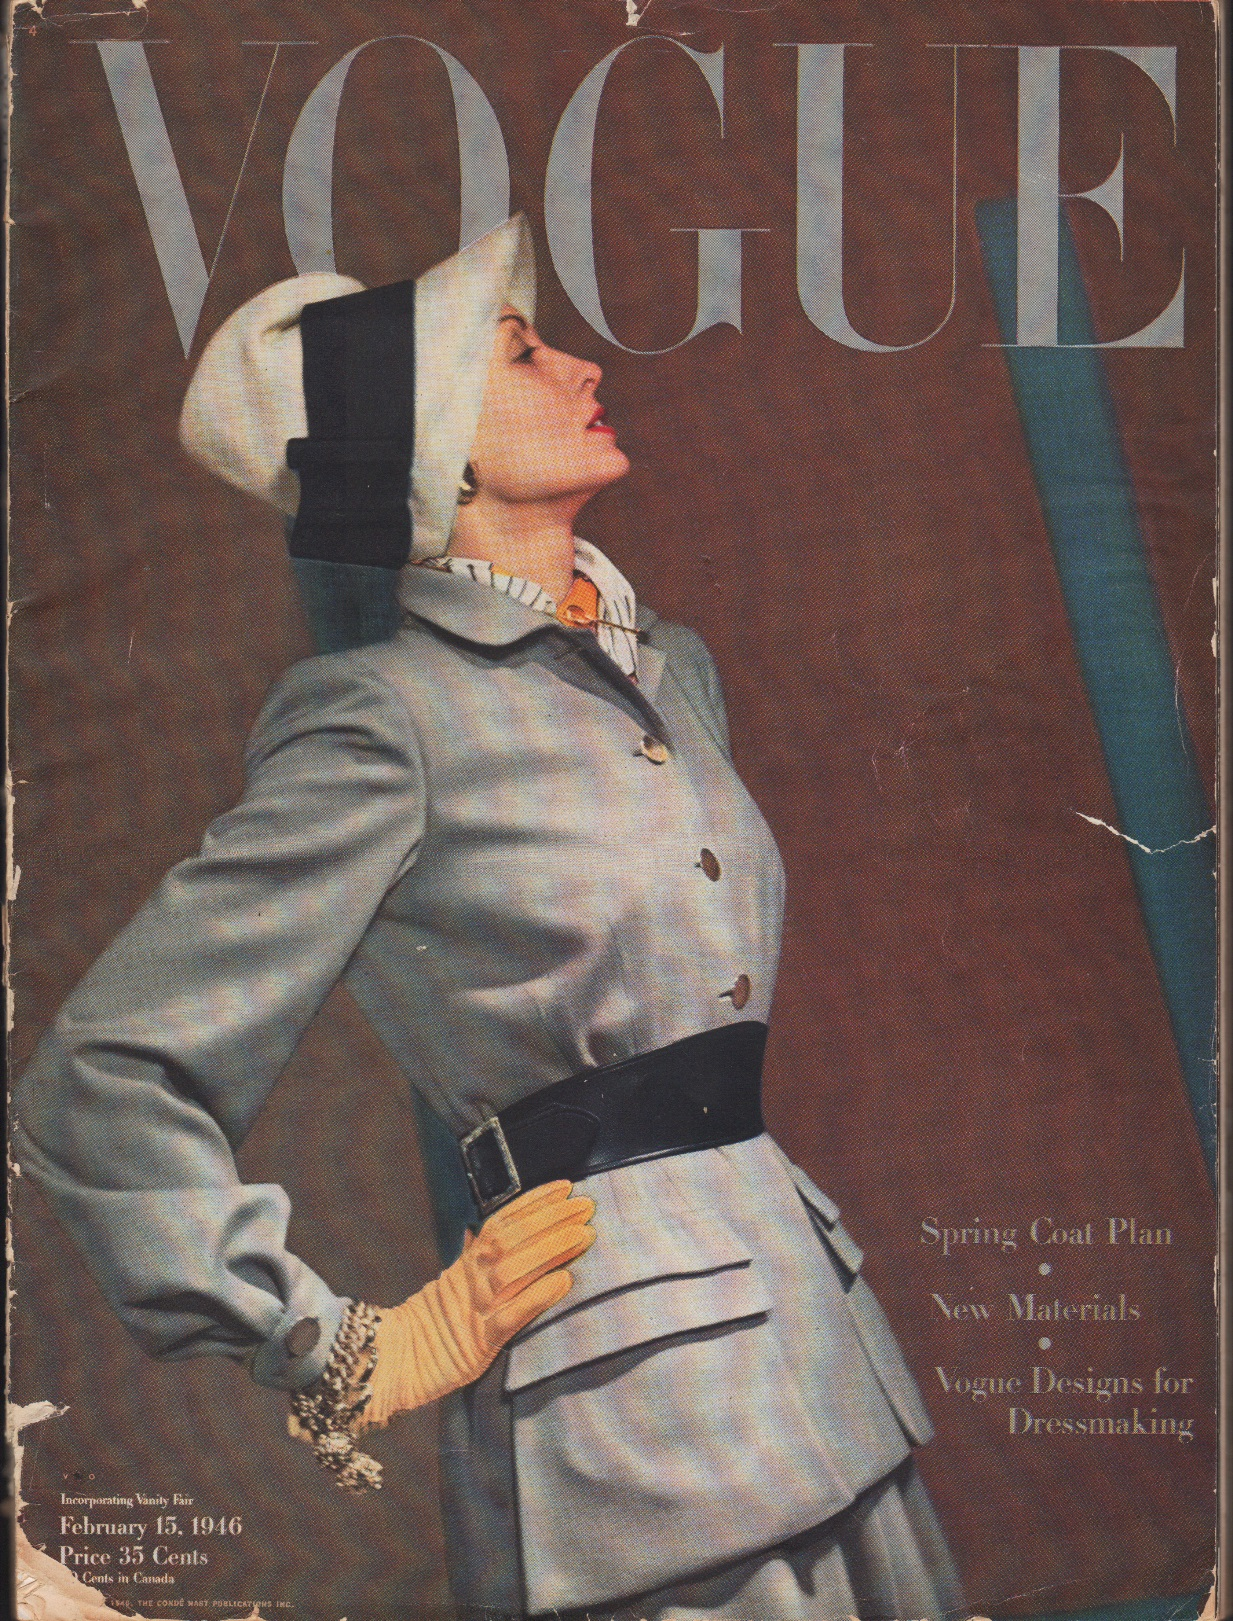 Image for Vogue Magazine, February 15, 1946 Spring Coat Plan, New Materials, Vogue Designs for Dressmaking